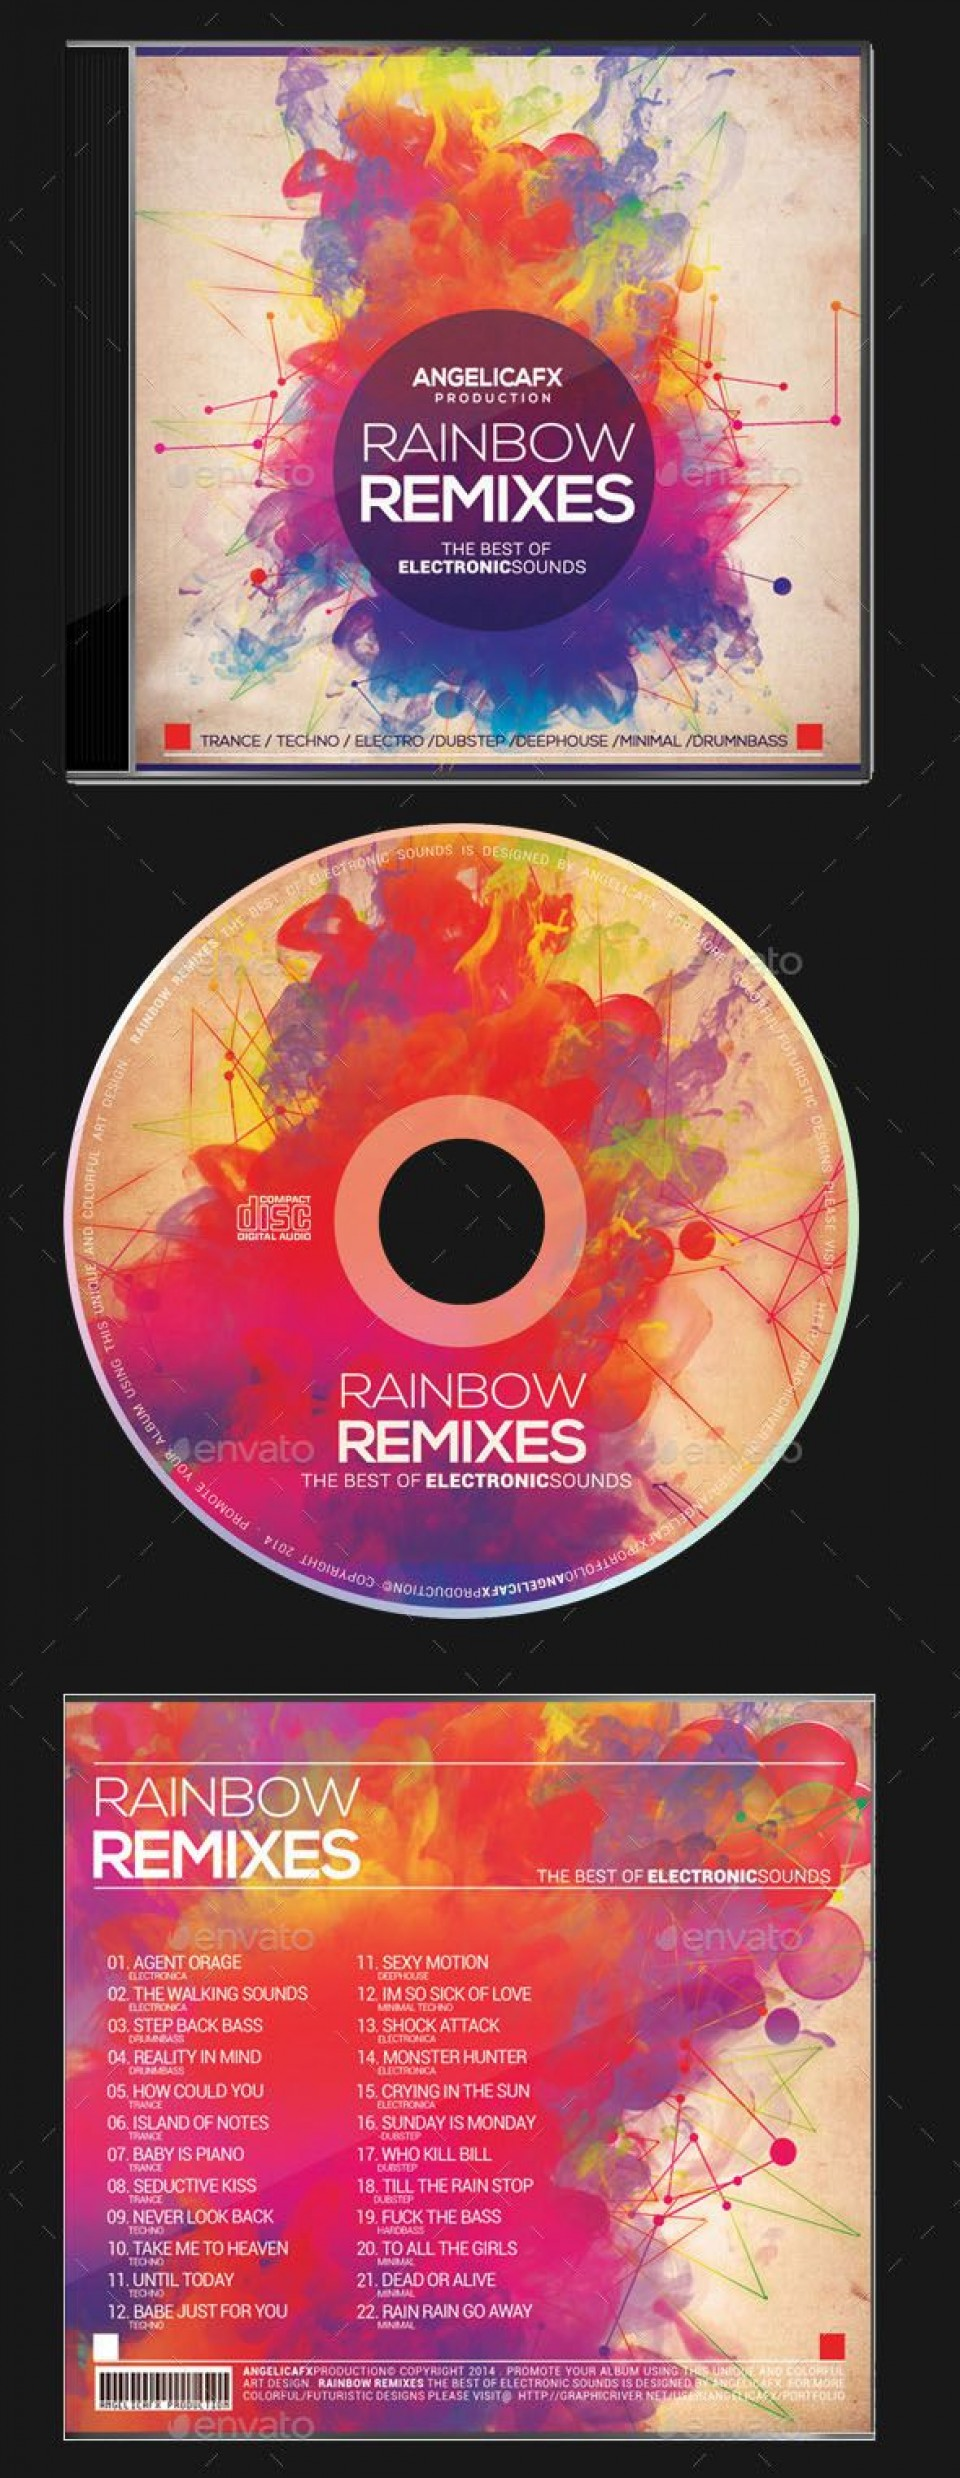 002 Unforgettable Free Cd Cover Design Template Photoshop Inspiration  Label Psd Download960